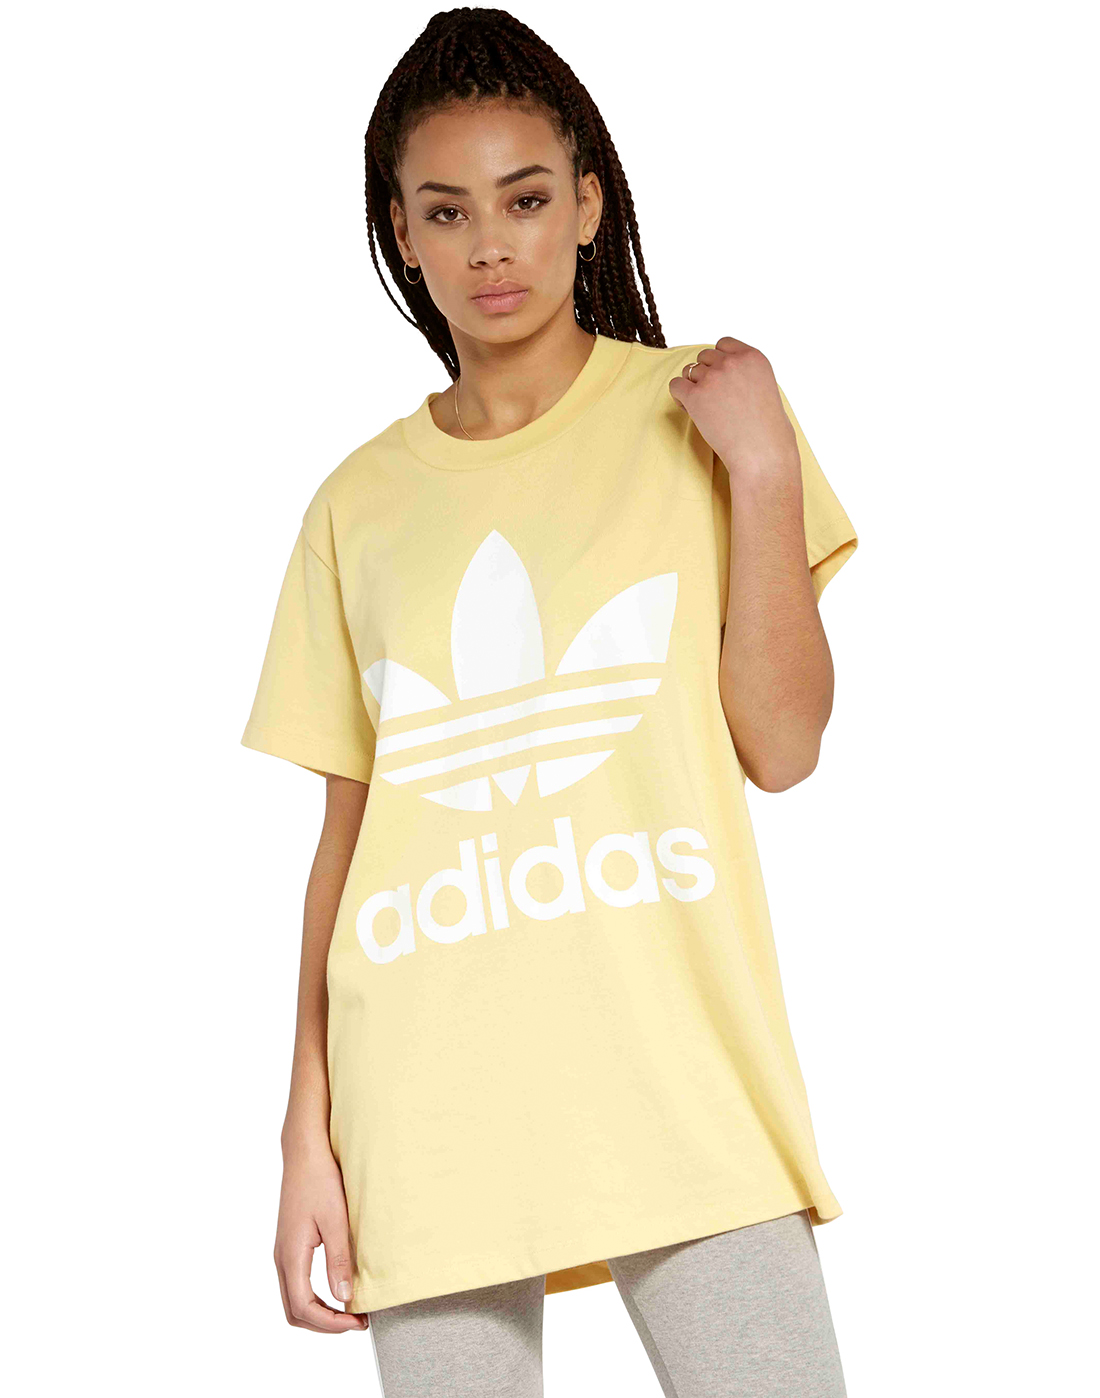 461d3d1e00d5 Women s Yellow adidas Originals Big Trefoil T-Shirt